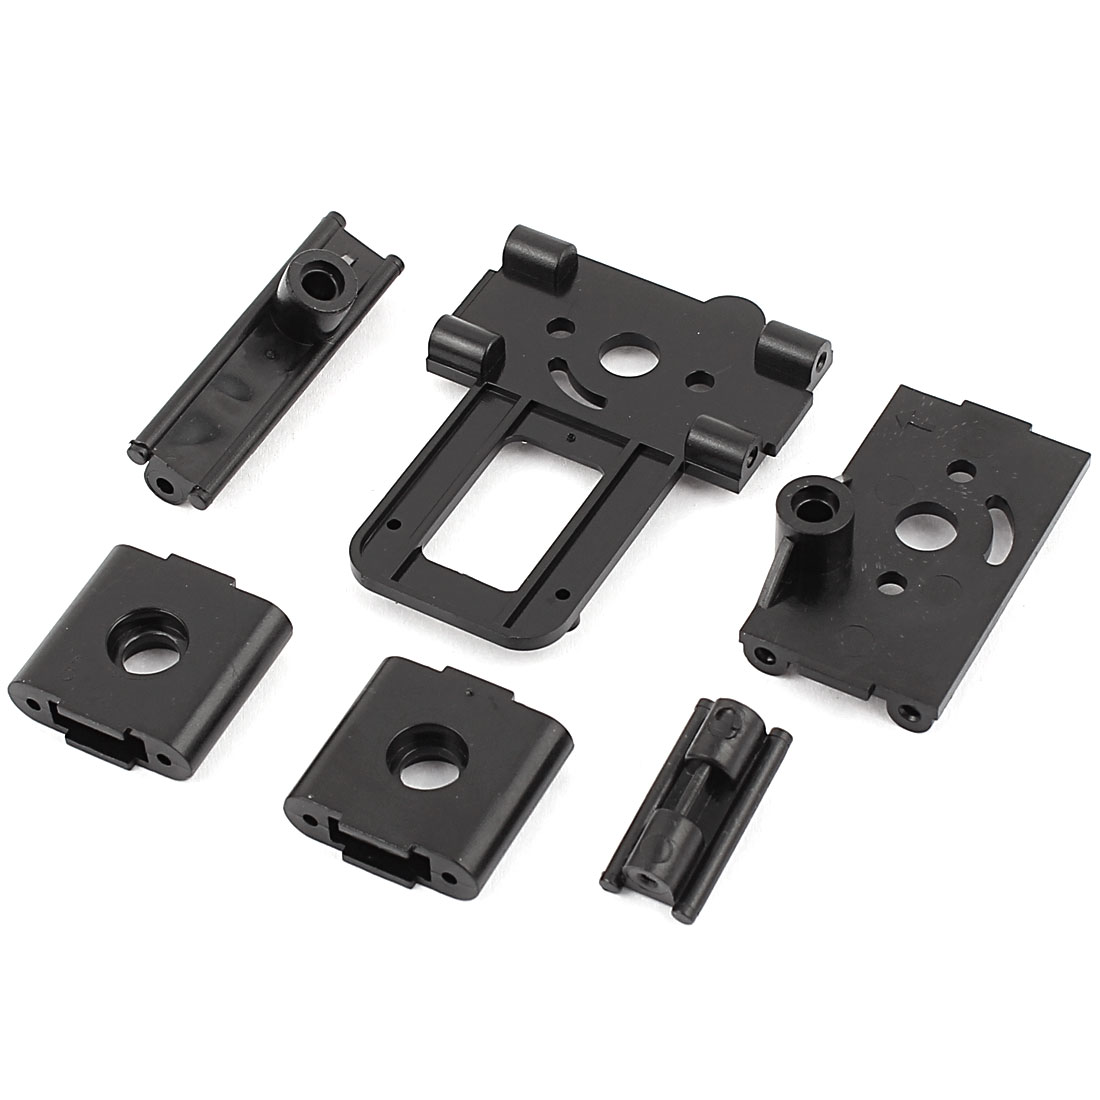 Replacement Motor Mount for RC Model DIY Double Horse 9101 Helicopter